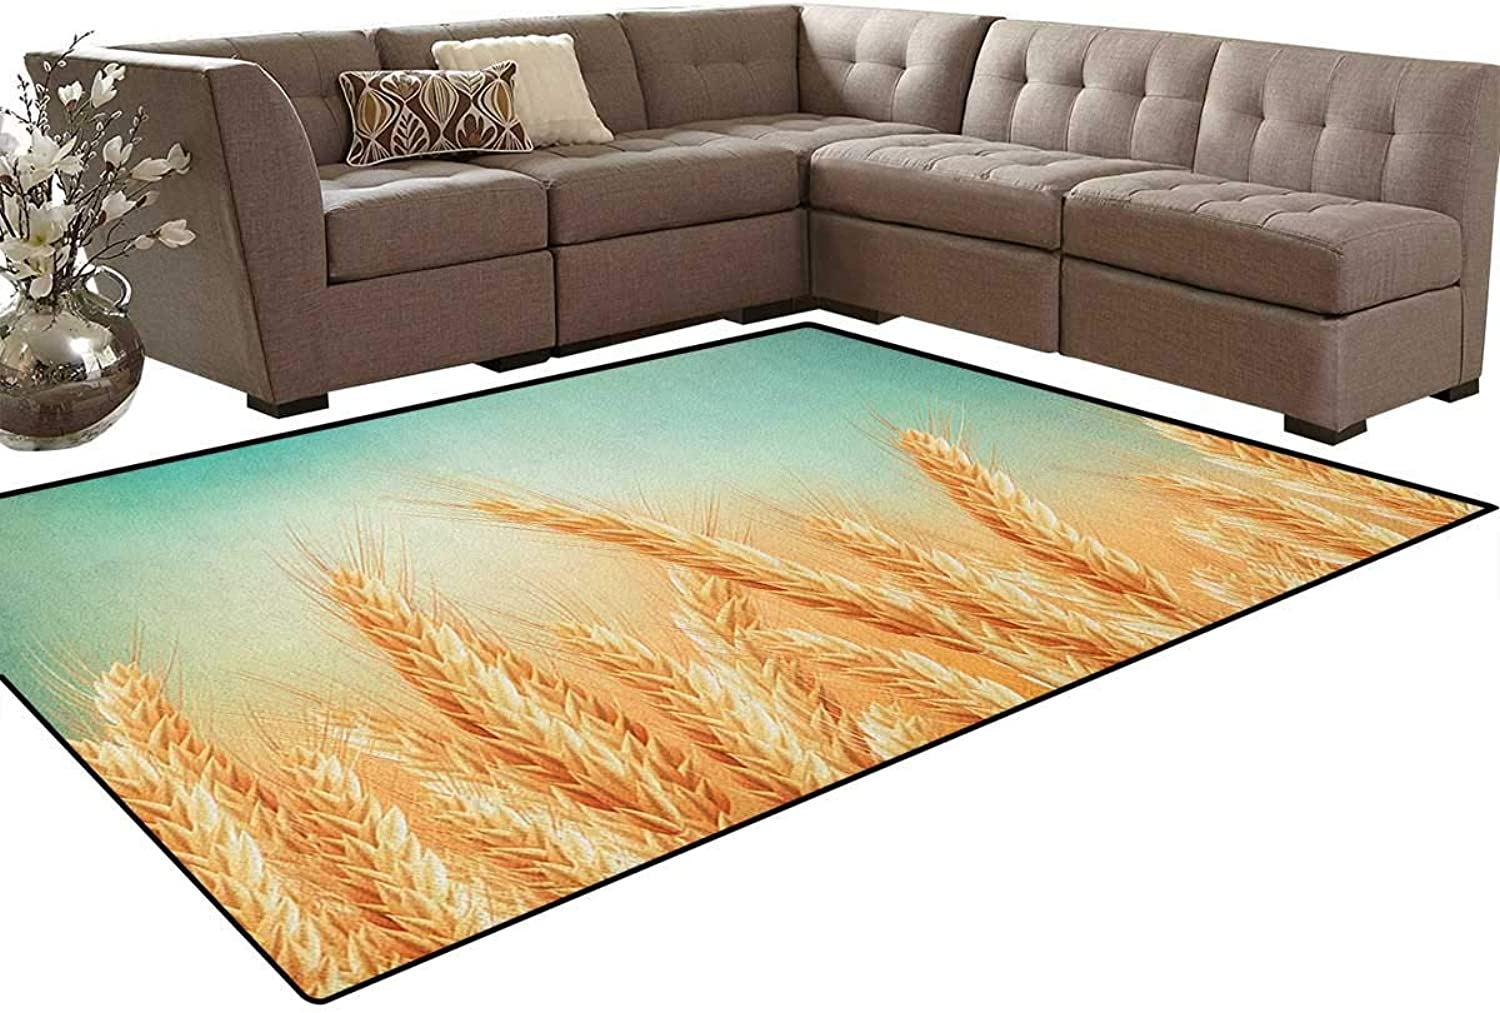 Wheat Field and bluee Sky Agriculture Themed Abstract Composition Floor Mat Rug Indoor Front Door Kitchen and Living Room Bedroom Mats Rubber Non Slip